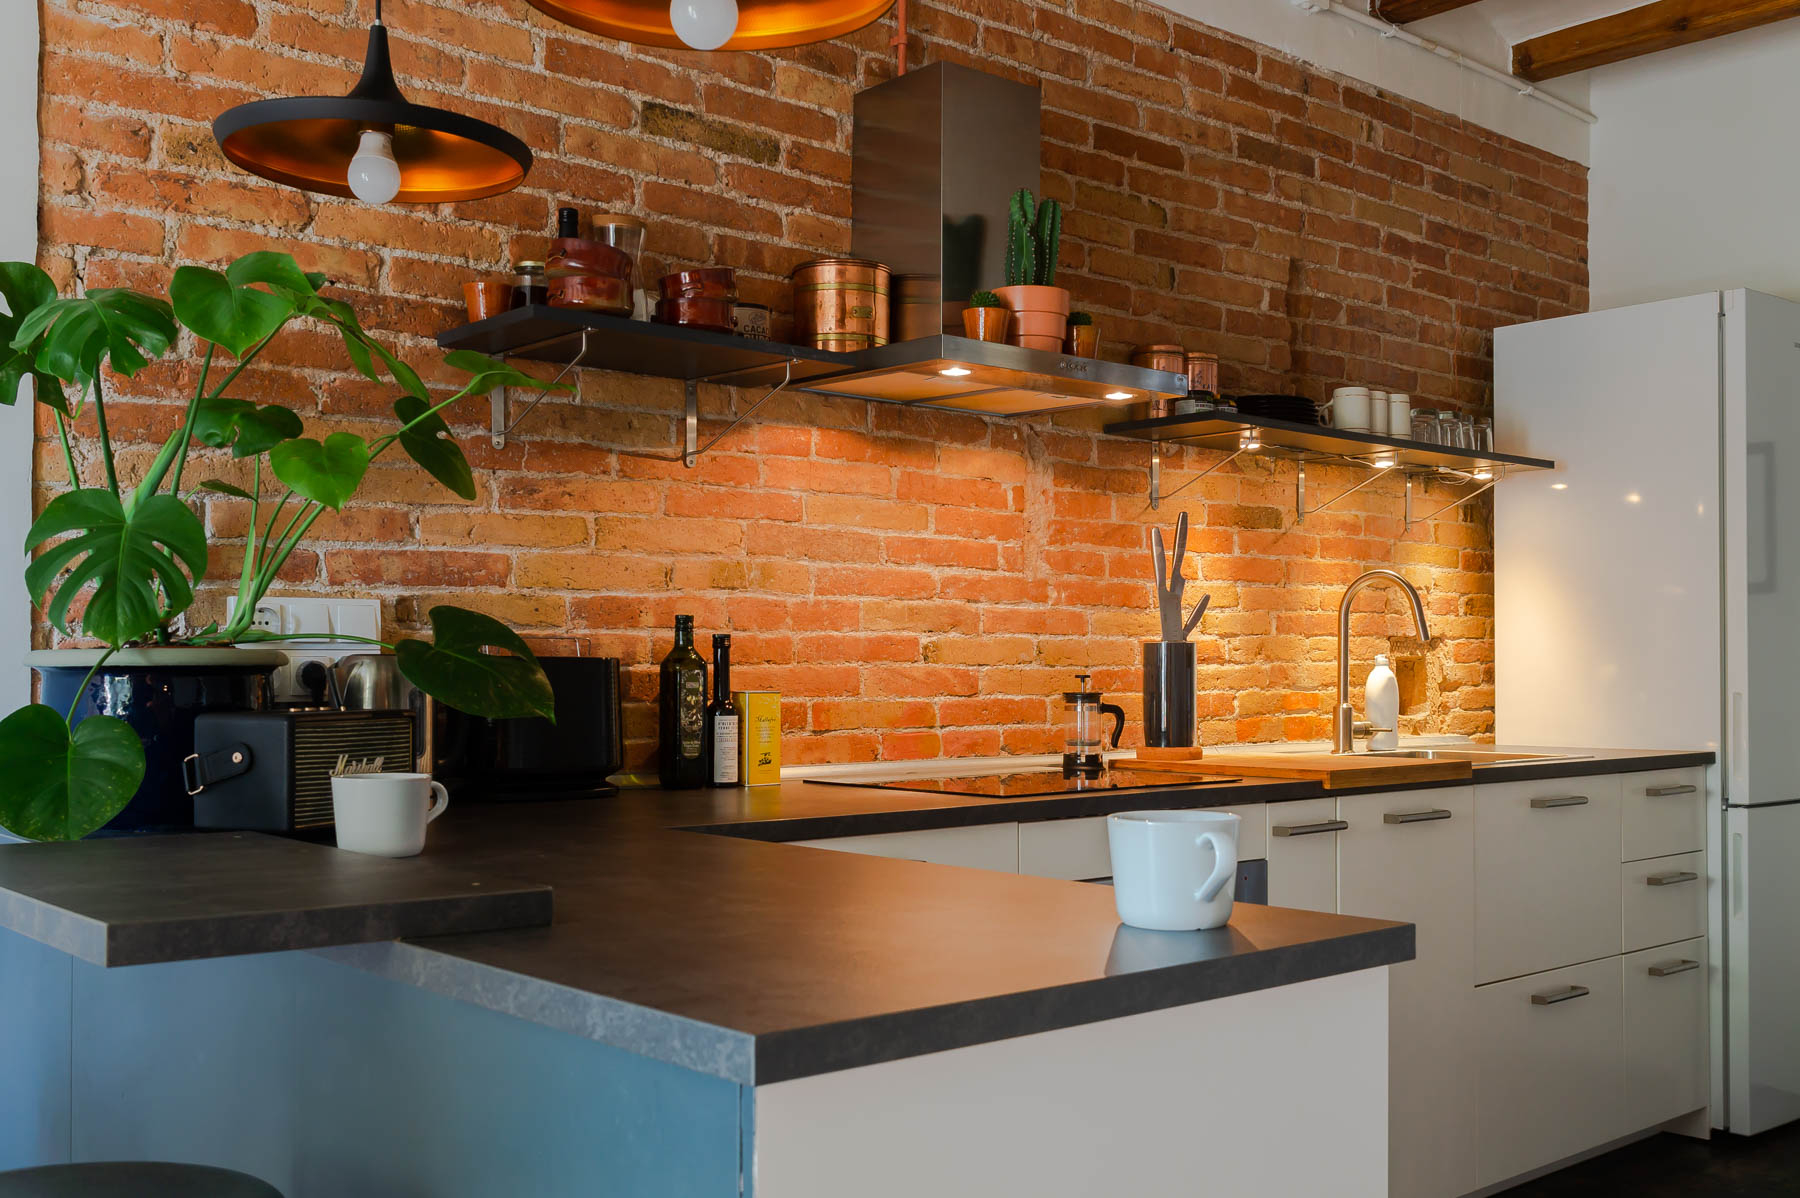 Barcelona home tour: New-York style open kitchen with exposed brick